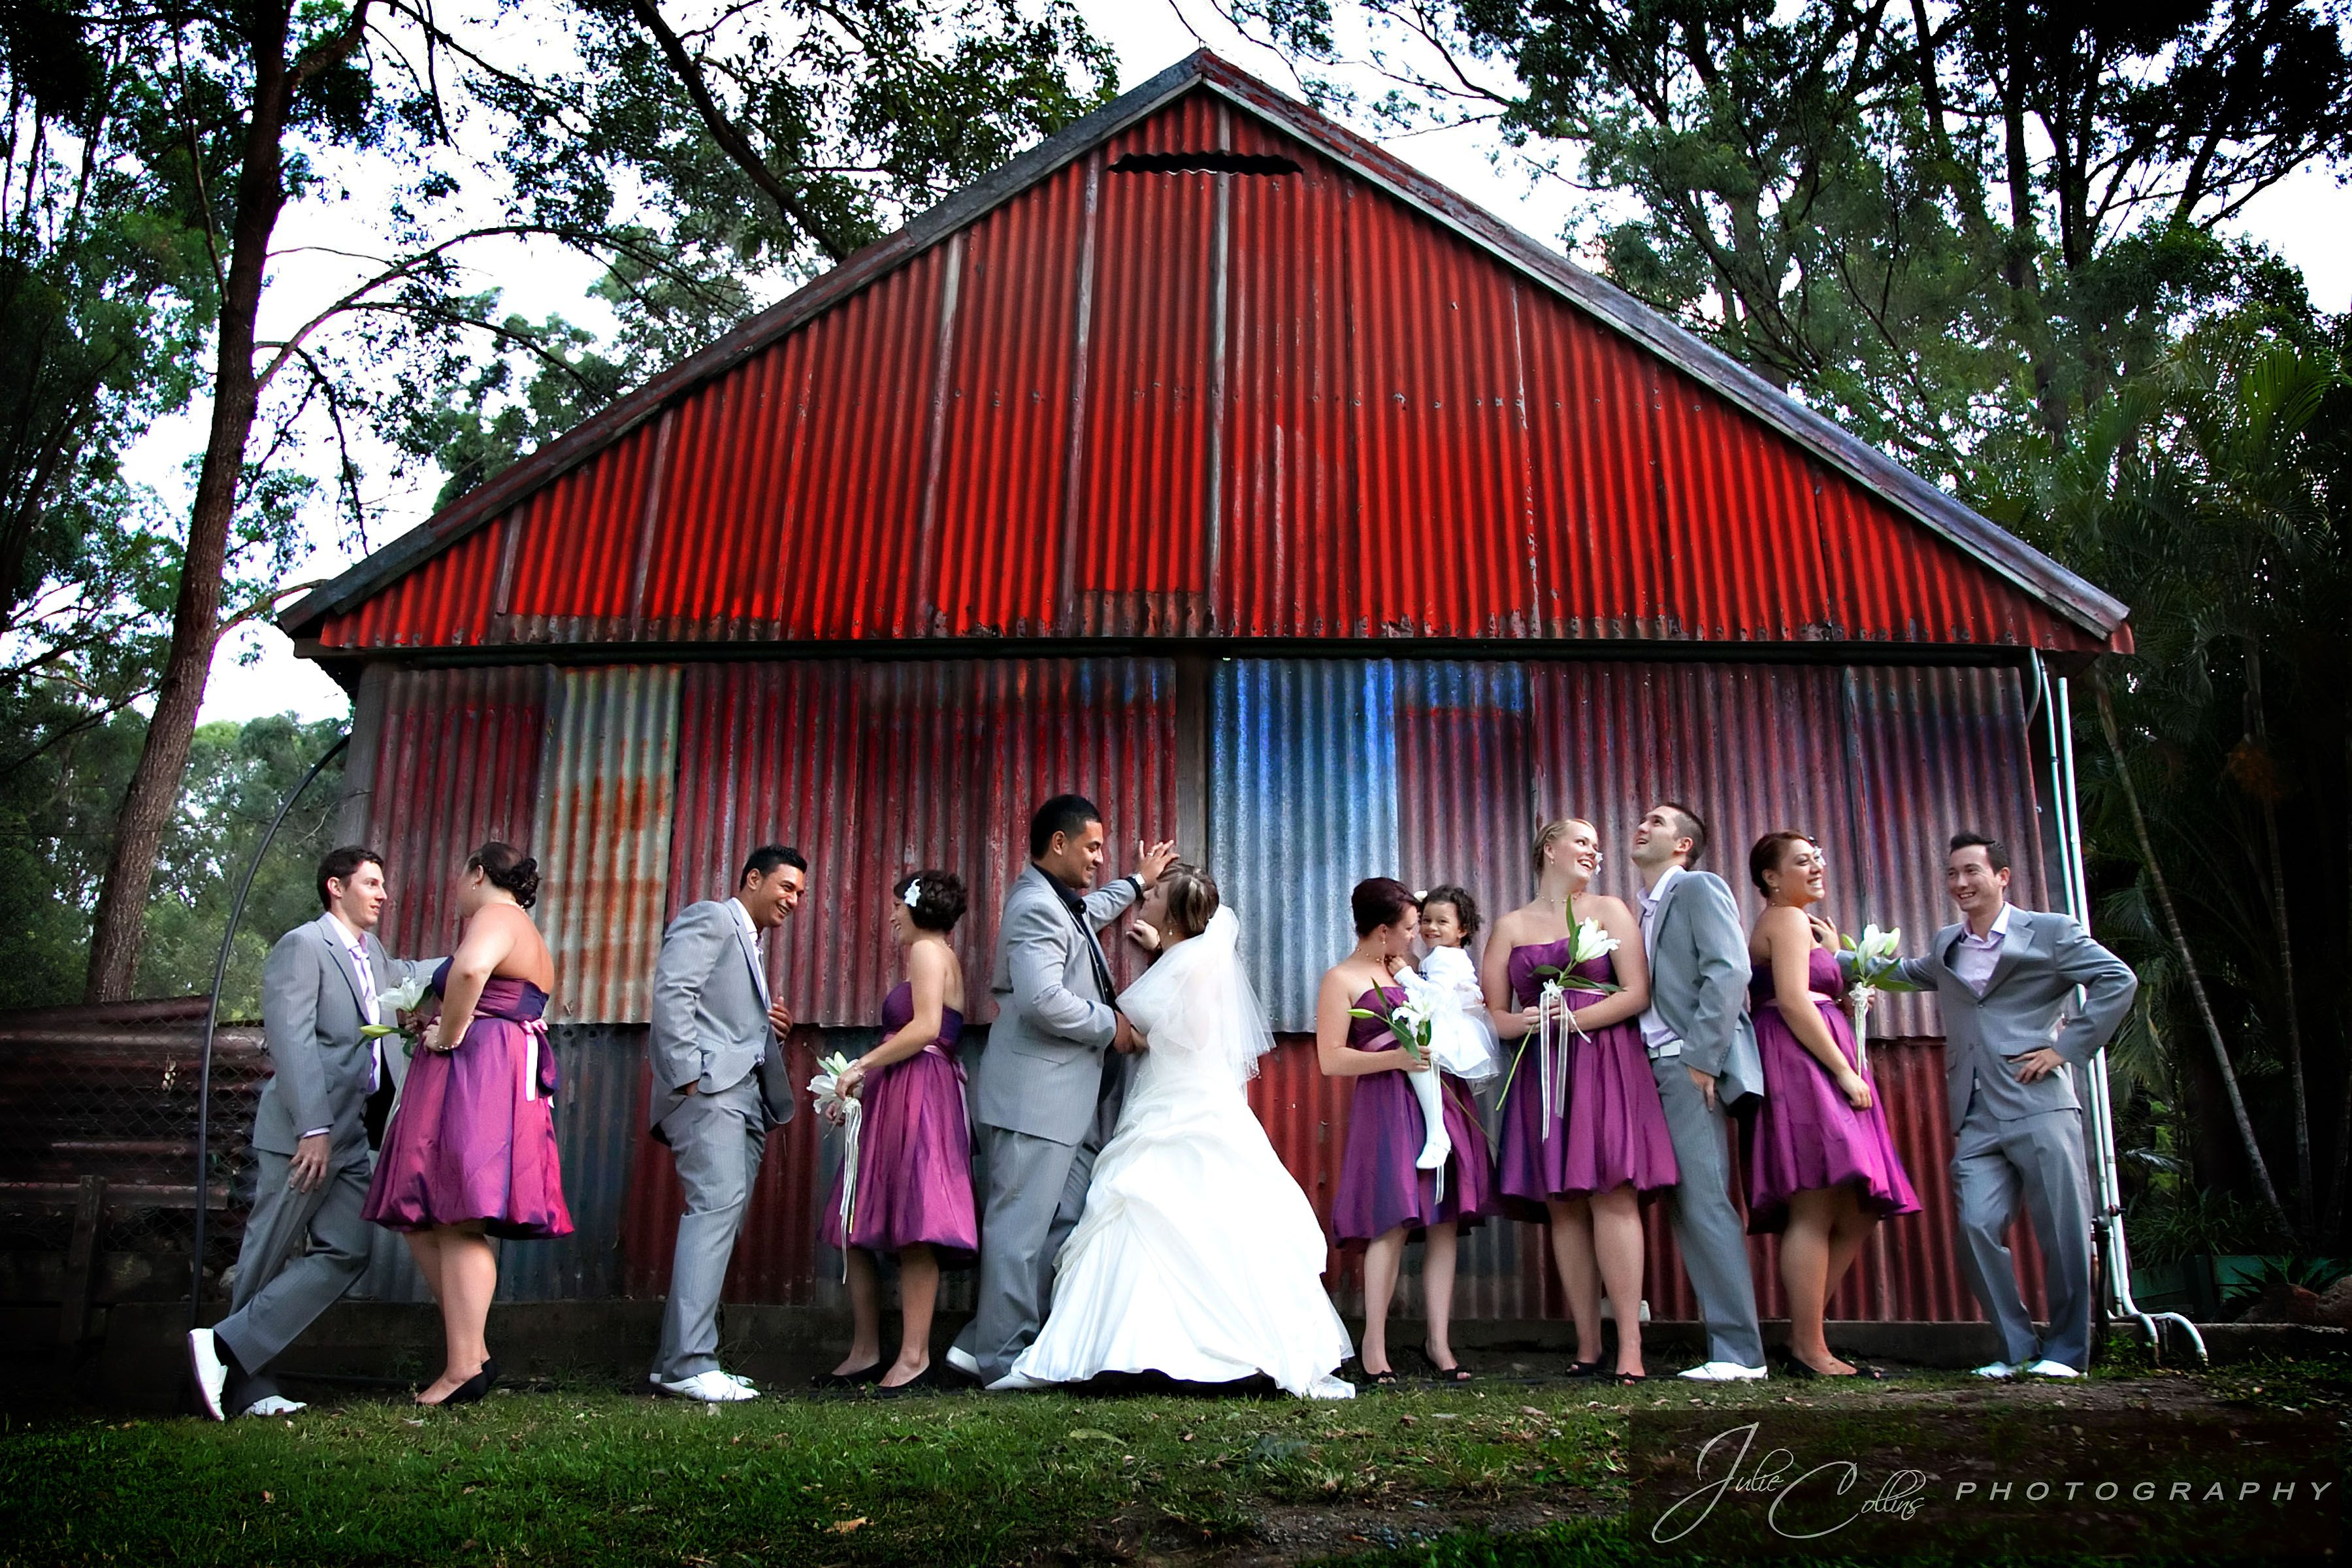 wedding receptions gold coast qld%0A Have your wedding at our rainforest amphitheatre  Choose from   beautiful reception  venues for an unforgettable wedding day on Tamborine Mountain